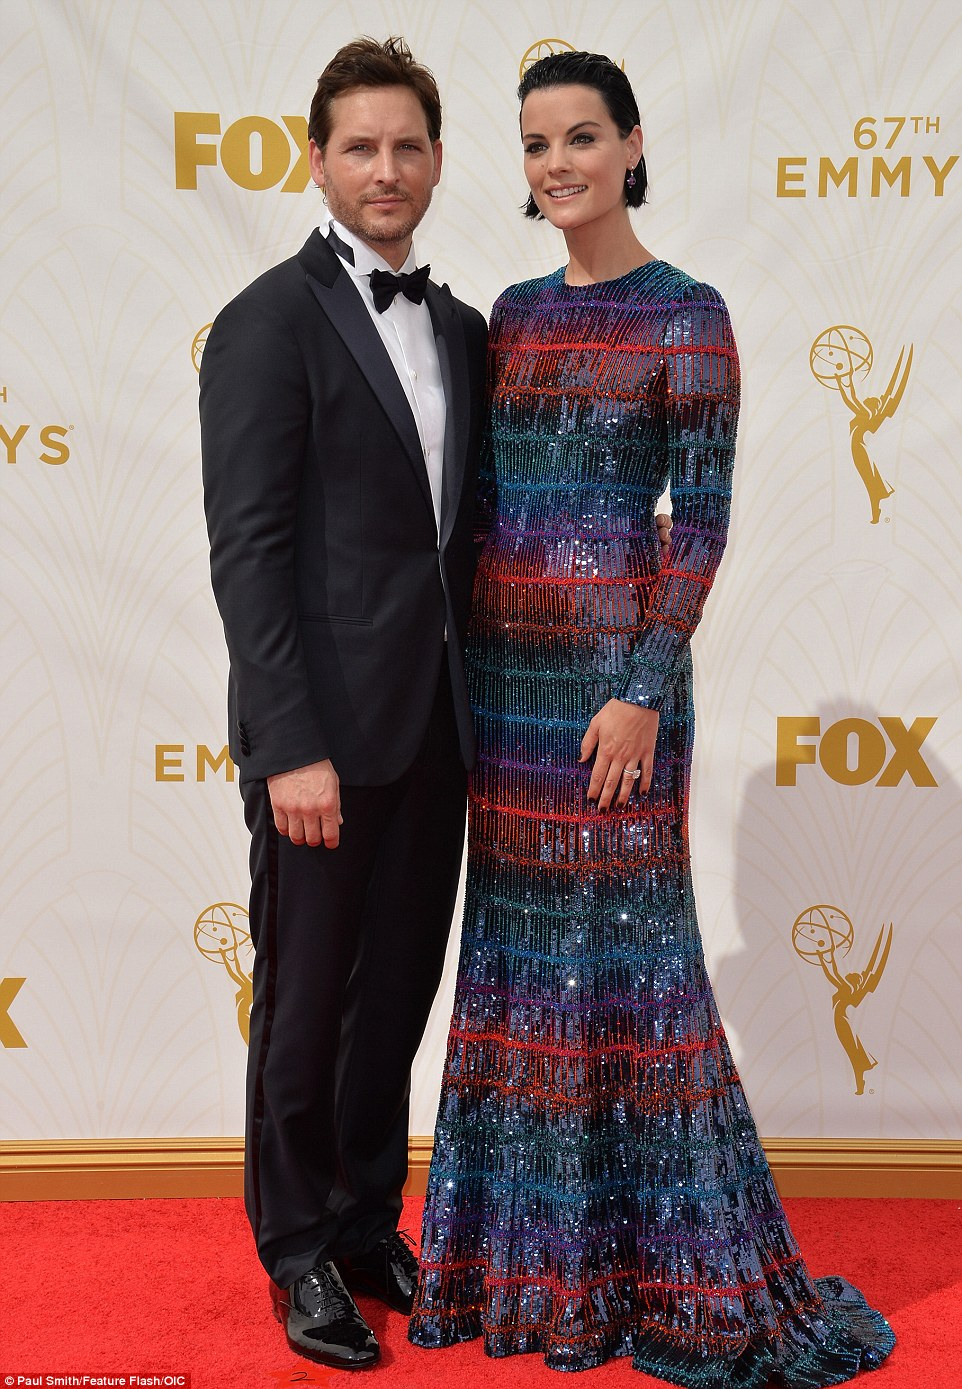 Lovebirds: Jaimie Alexander and Peter Facinelli cut a stylish couple on the red carpet